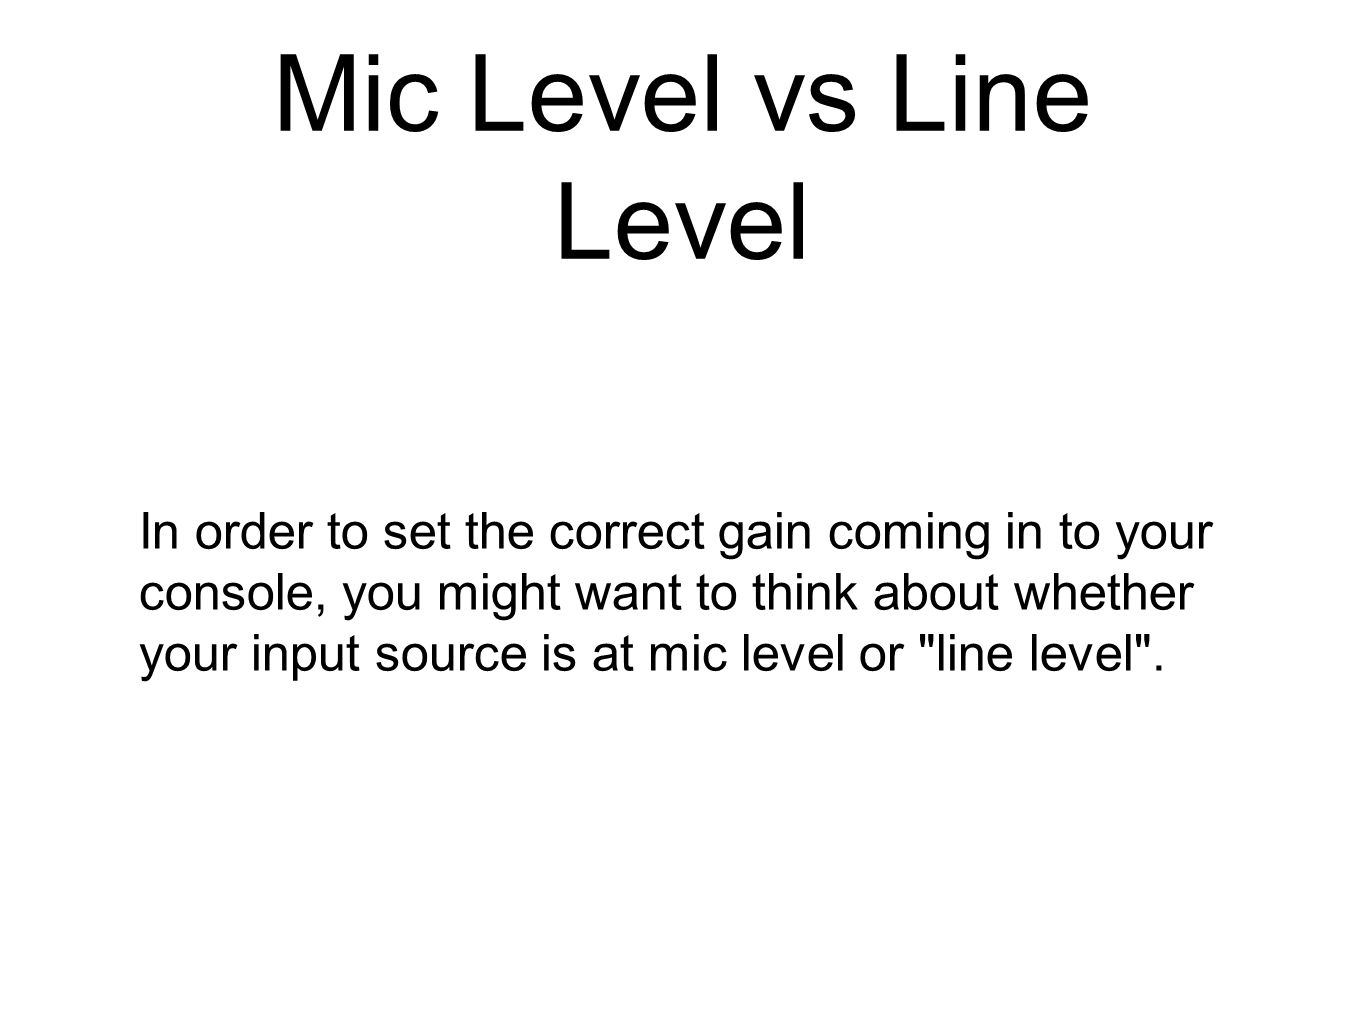 Mic Level vs Line Level In order to set the correct gain coming in to your console, you might want to think about whether your input source is at mic